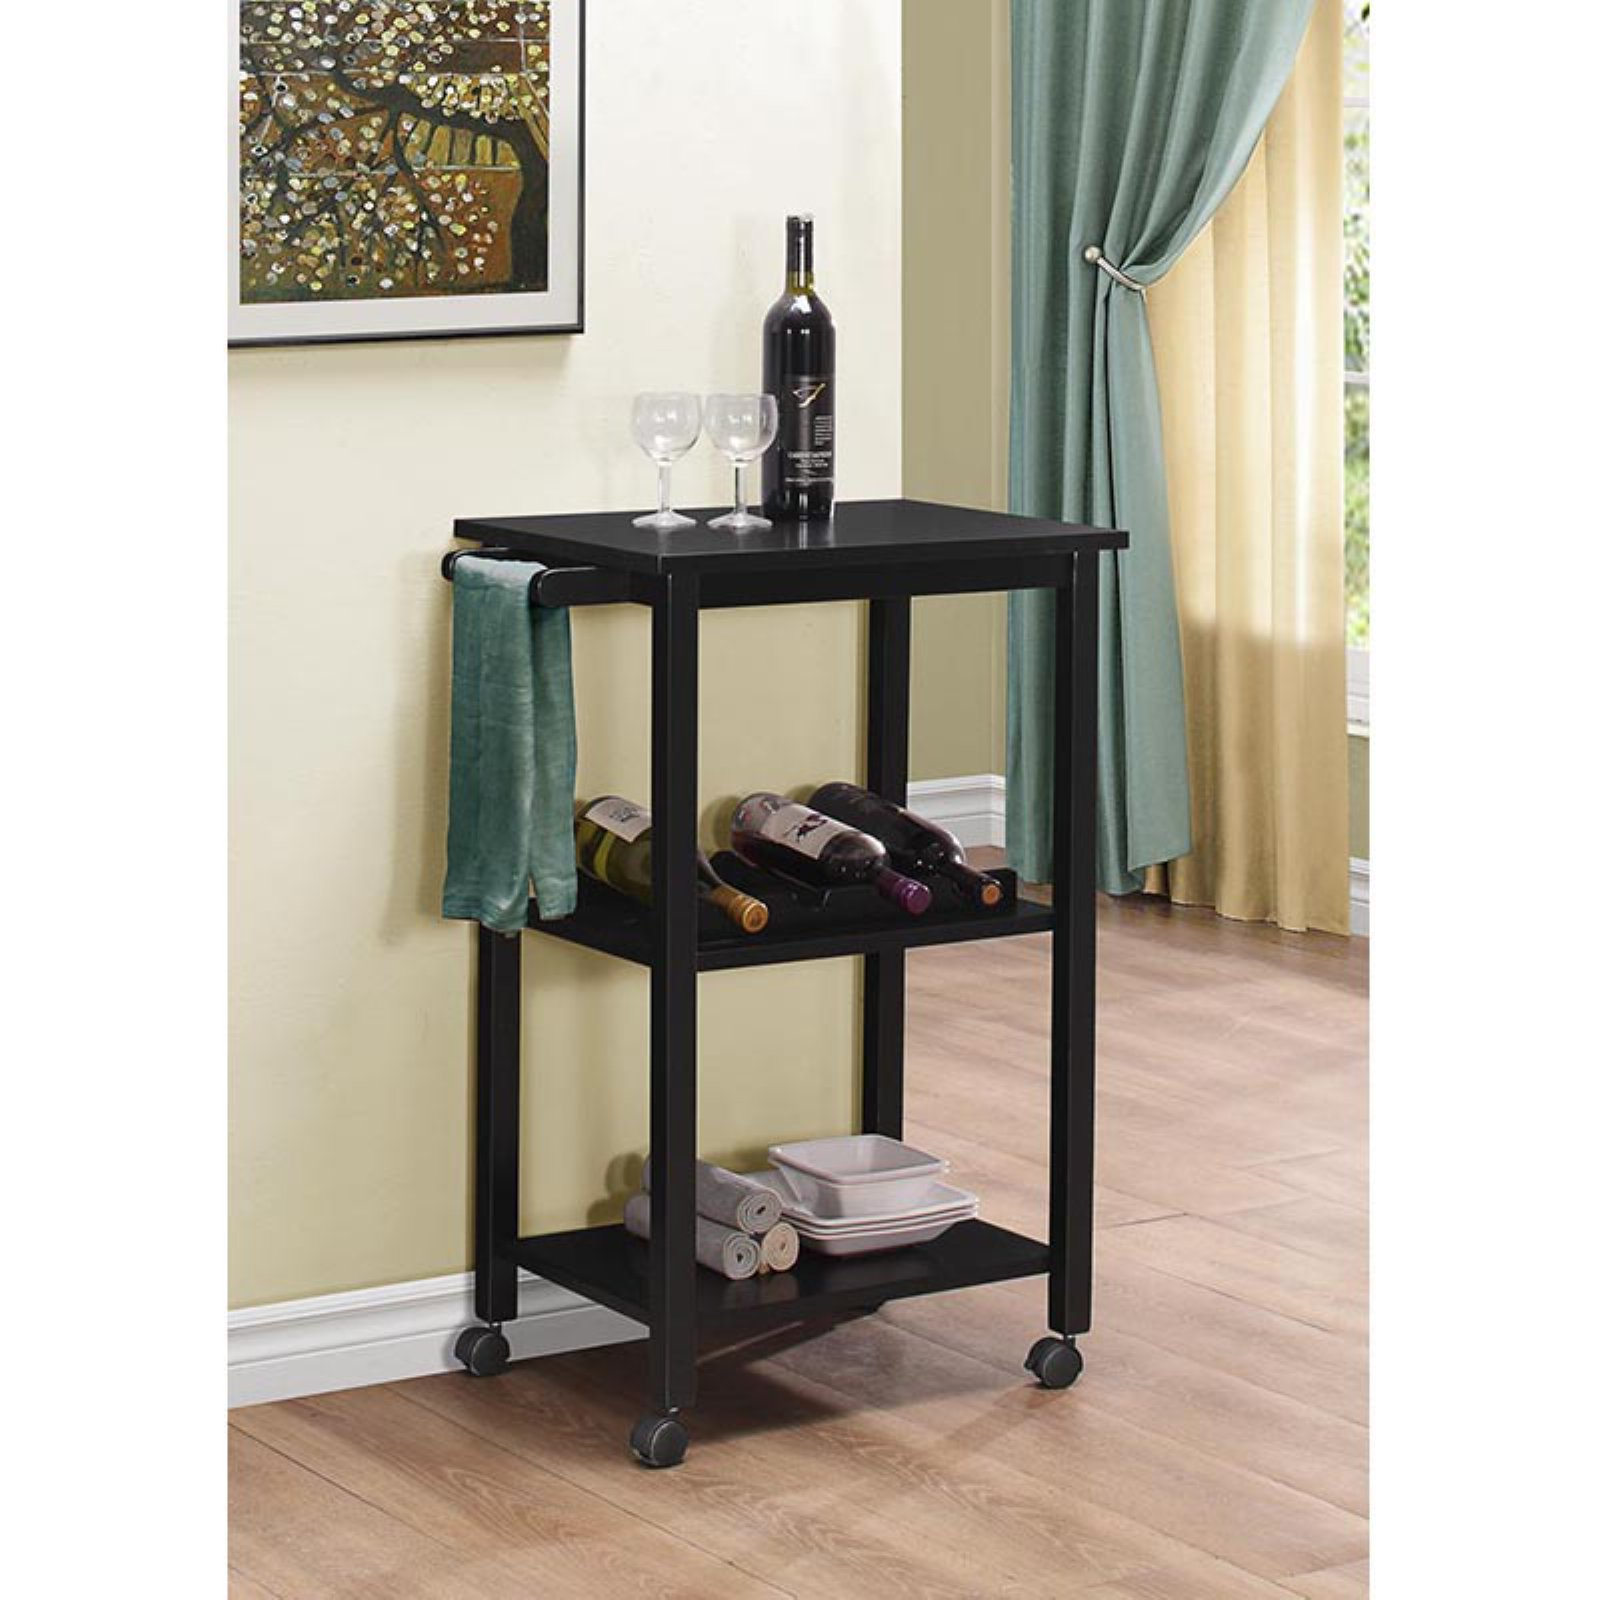 K & B Furniture K53 Kitchen Serving Cart